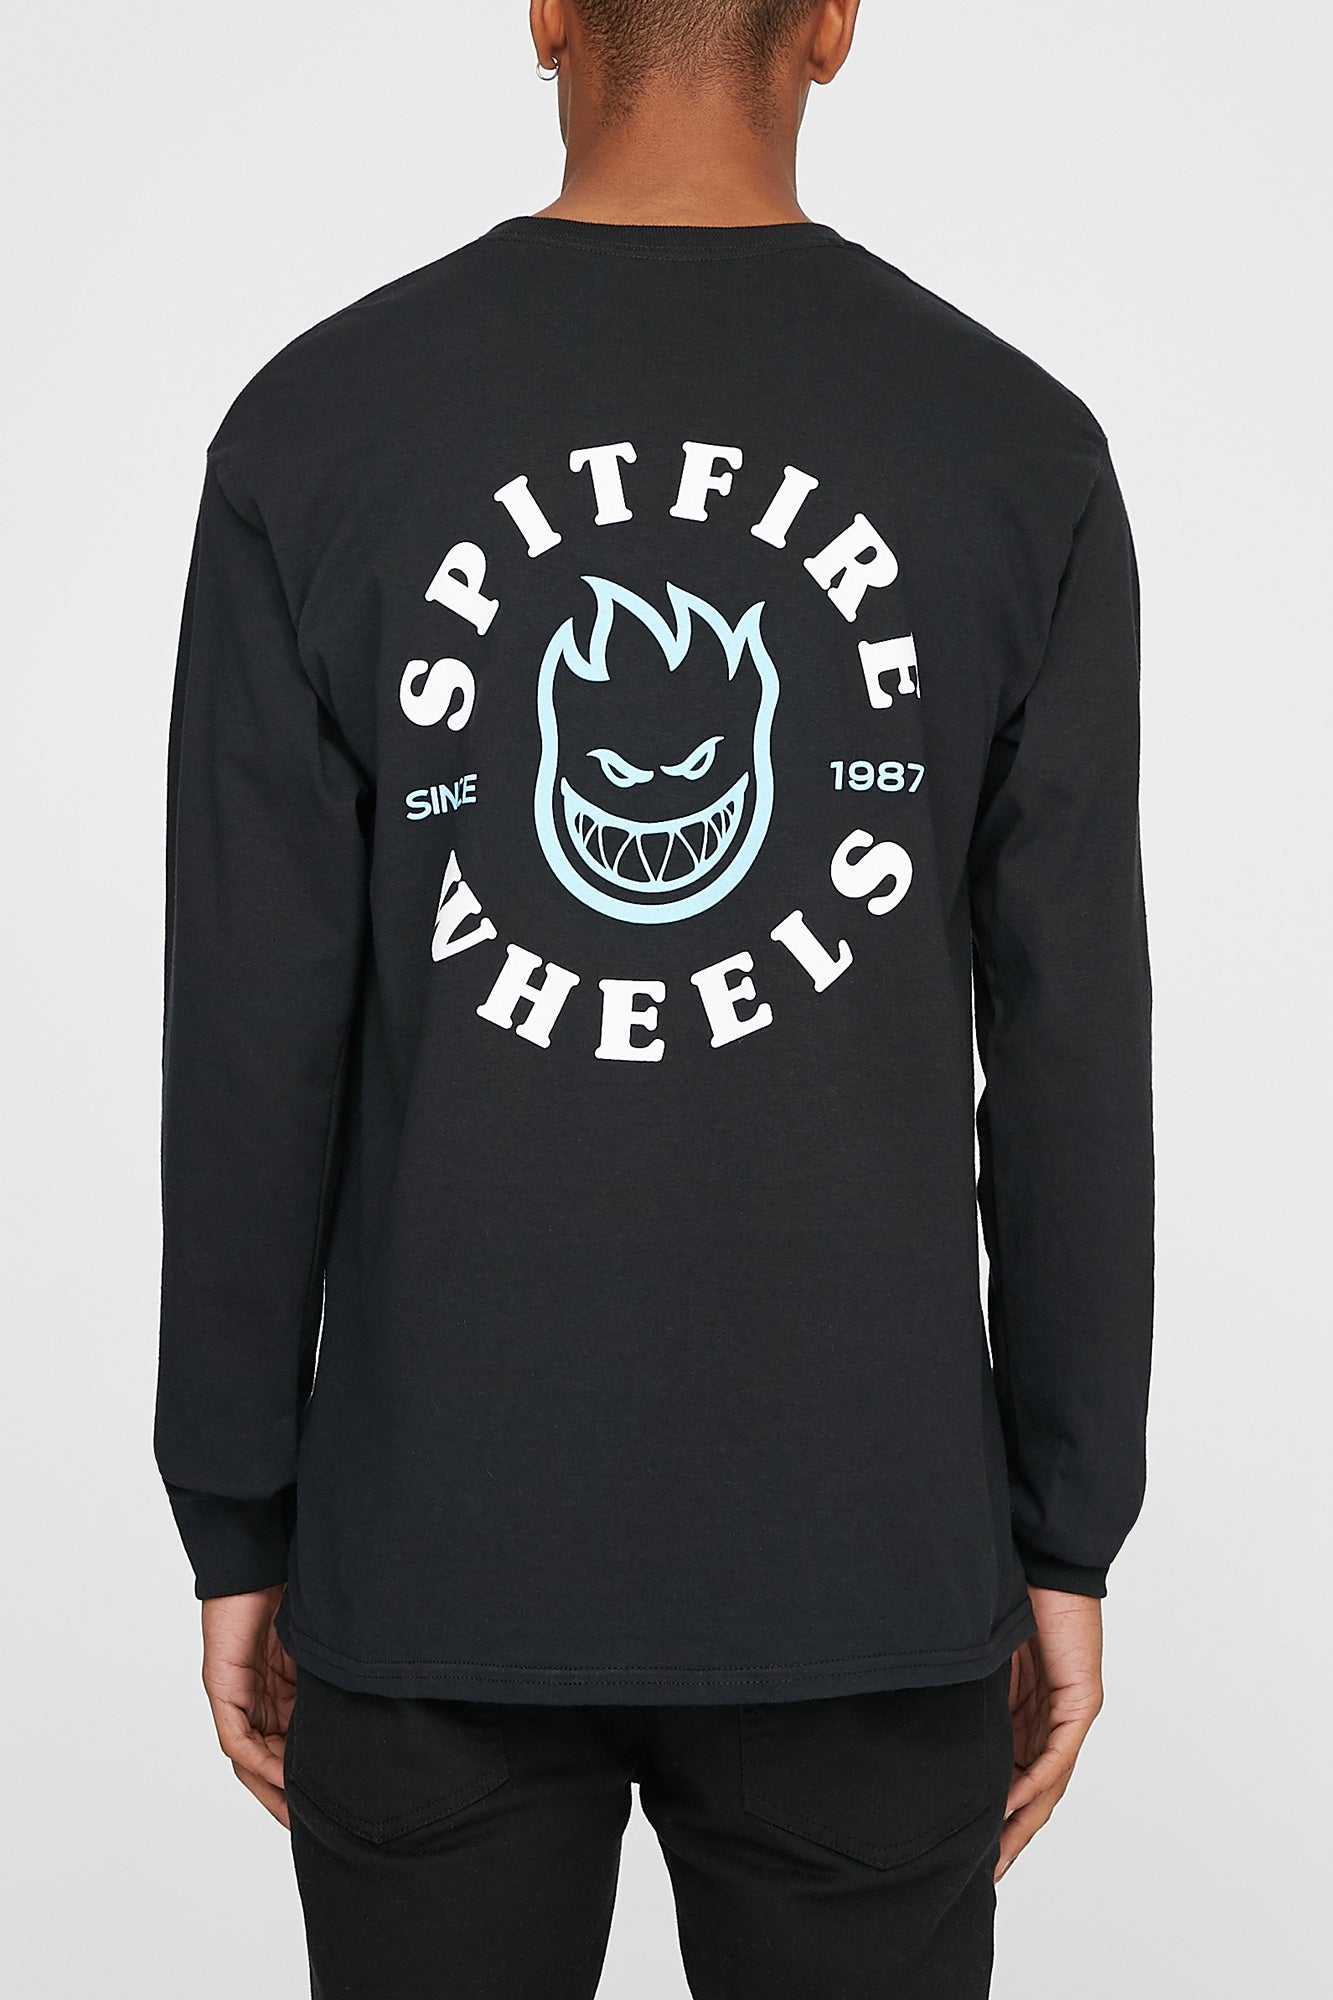 Spitfire Mens Black Long Sleeve Tee